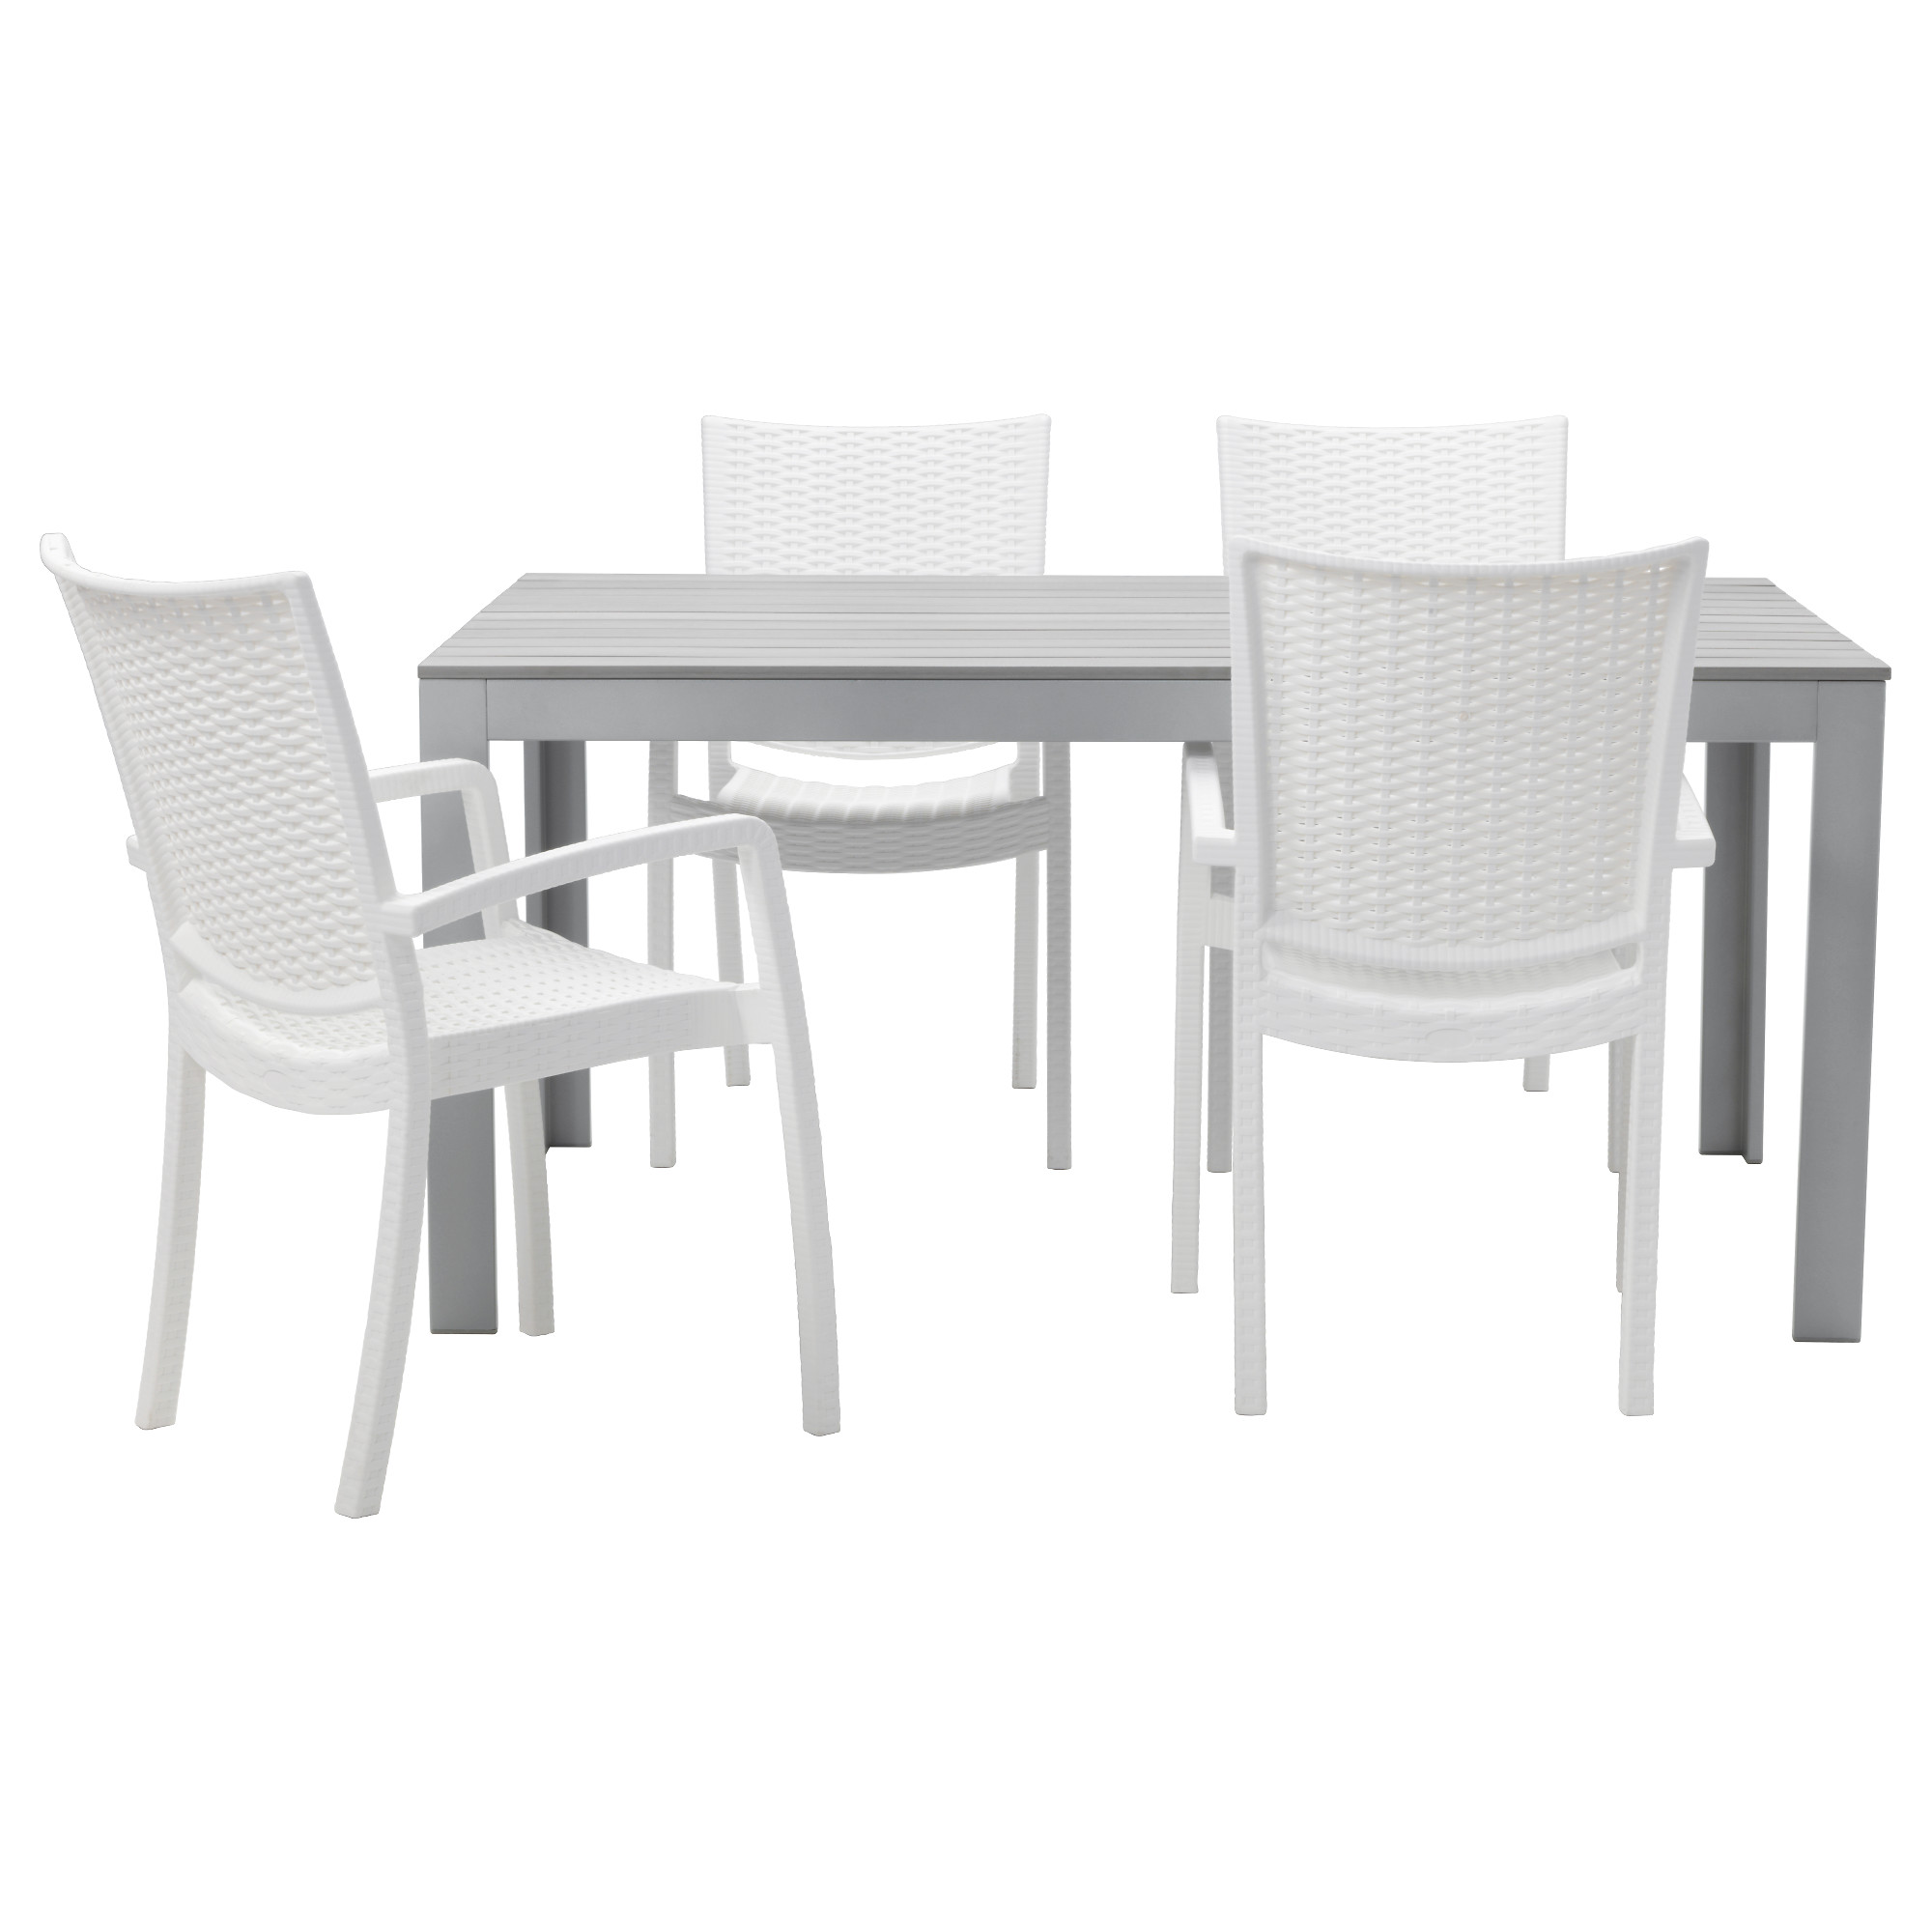 69129473 FALSTER Outdoor Dining Sets IKEA khmer in phnom penh cambodia